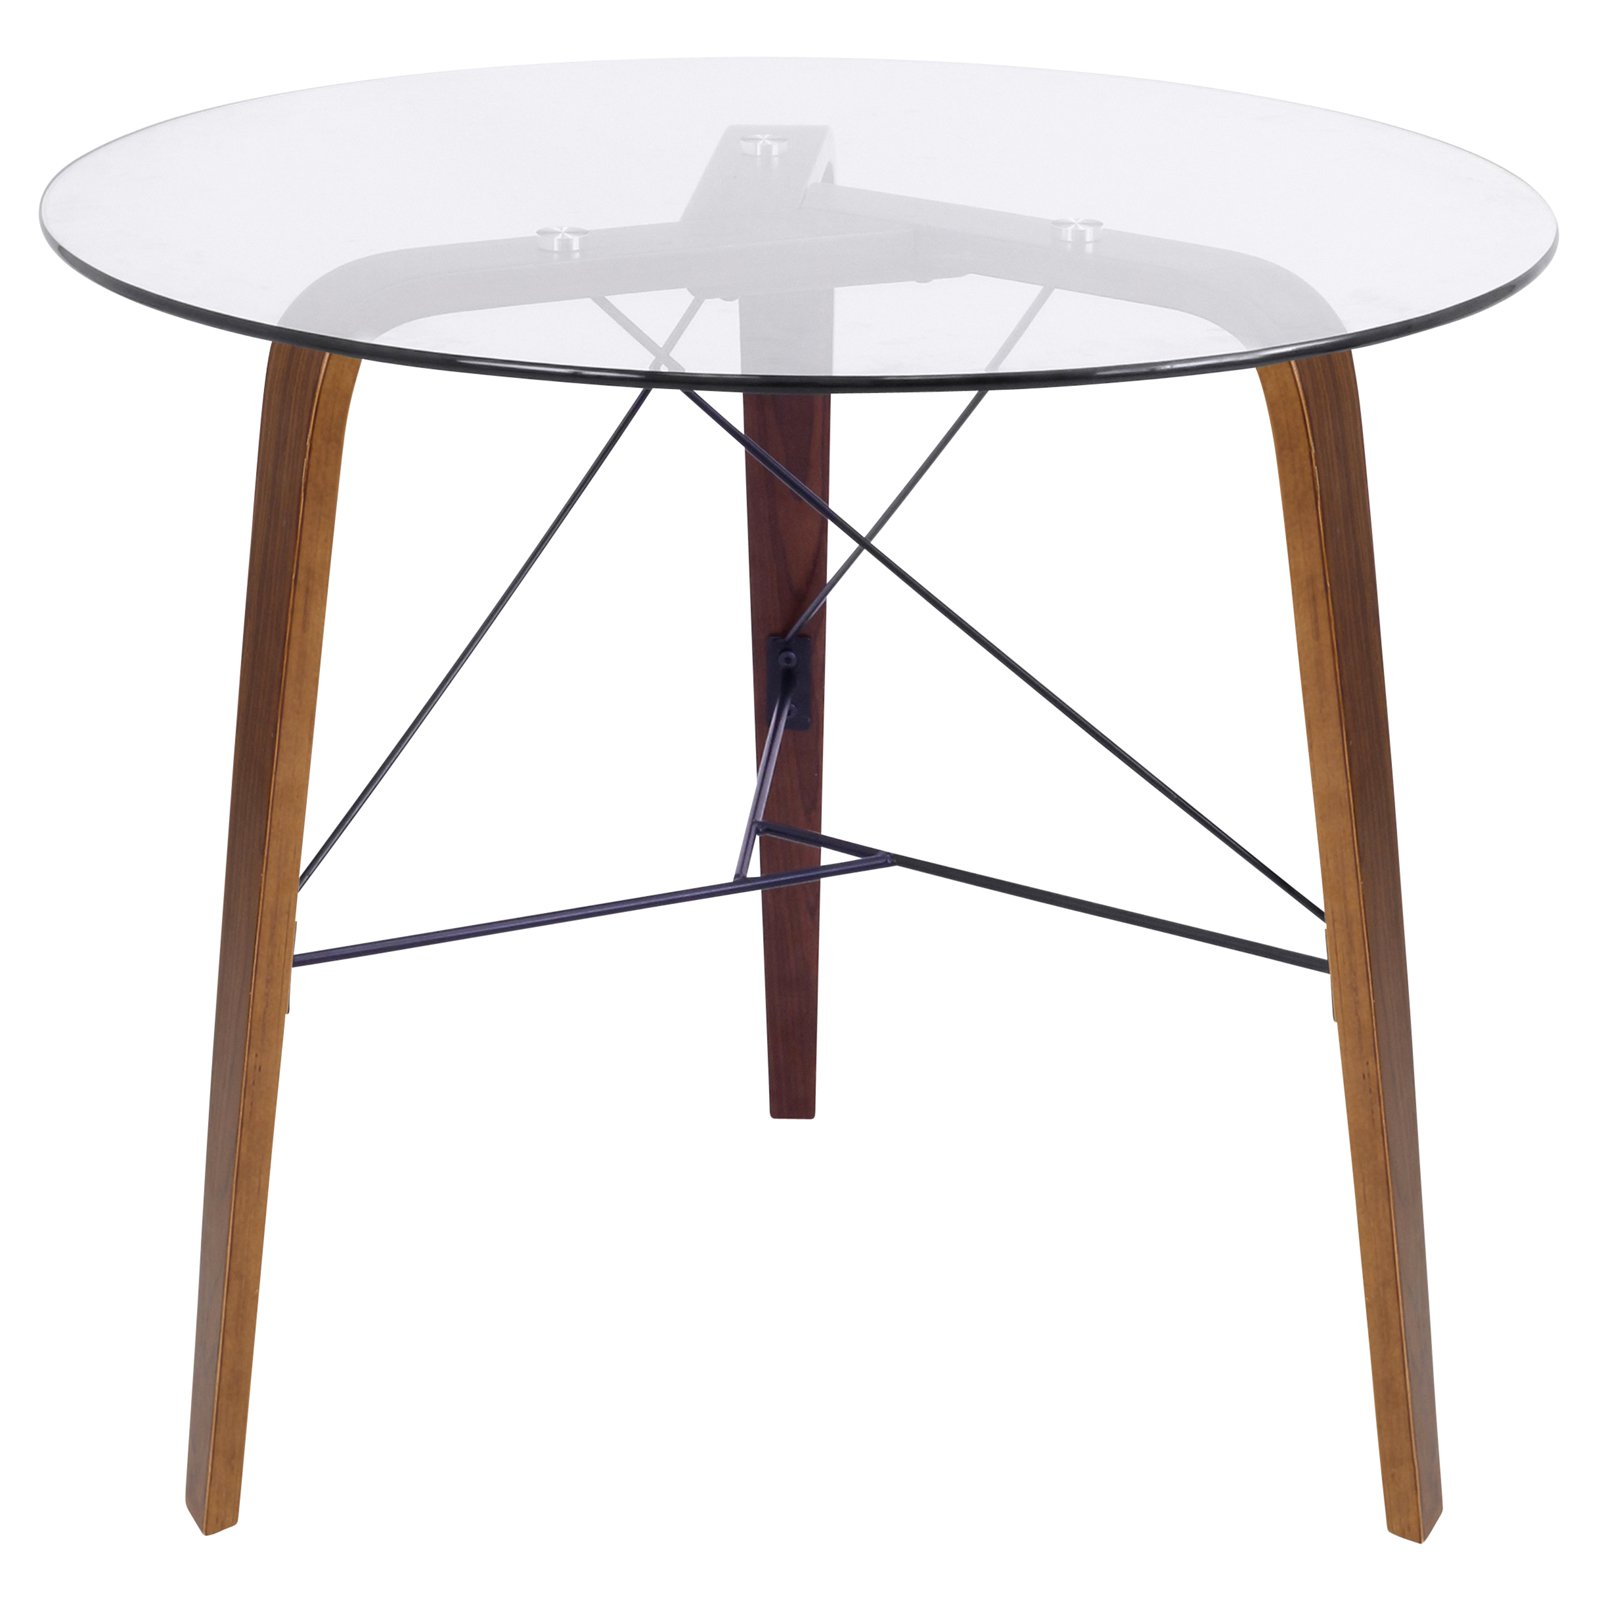 Trilogy Contemporary Round Dining Table in Walnut Wood and Clear Glass by LumiSource